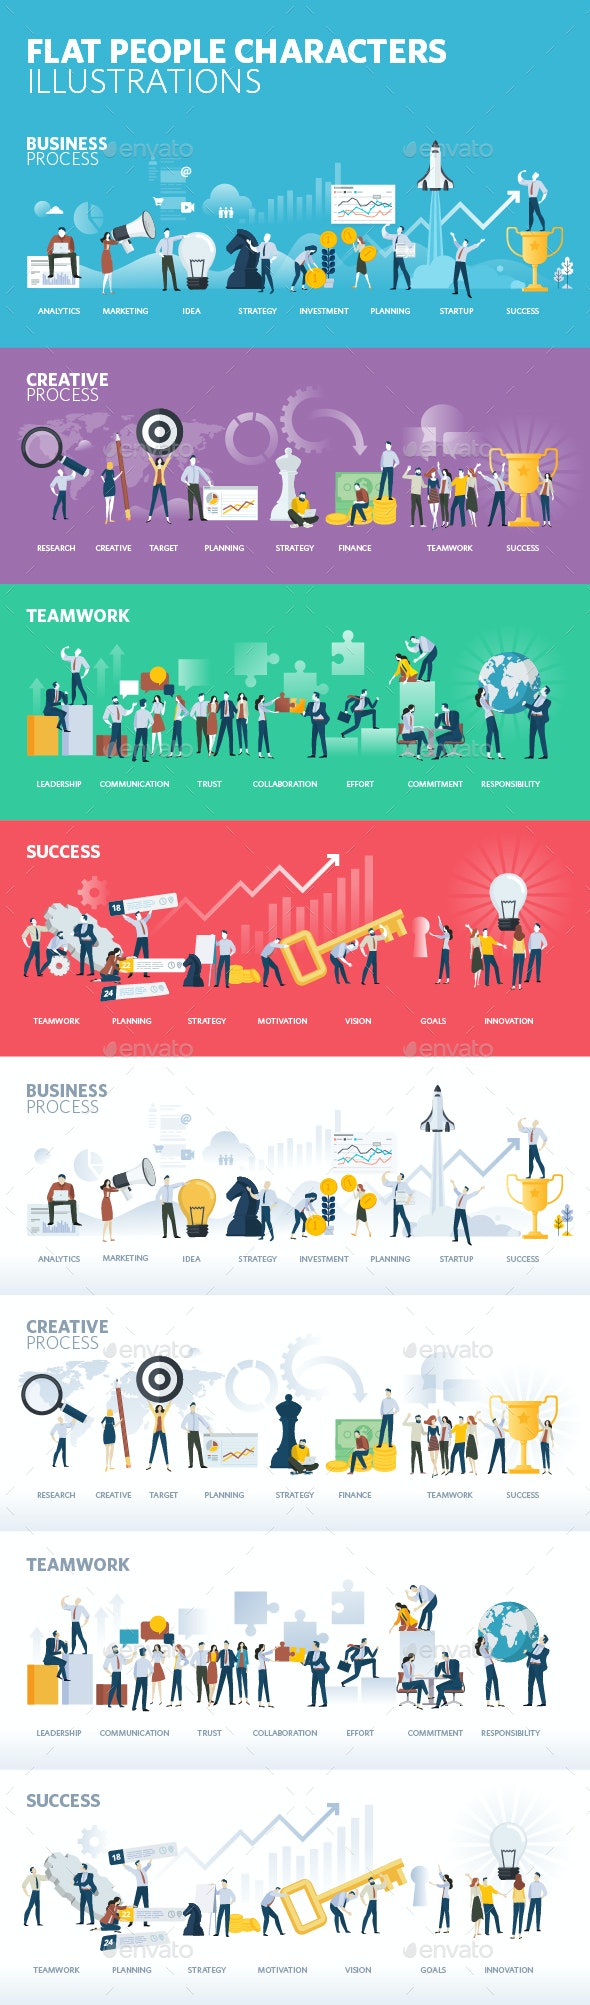 Flat Design People Illustrations - Concepts Business